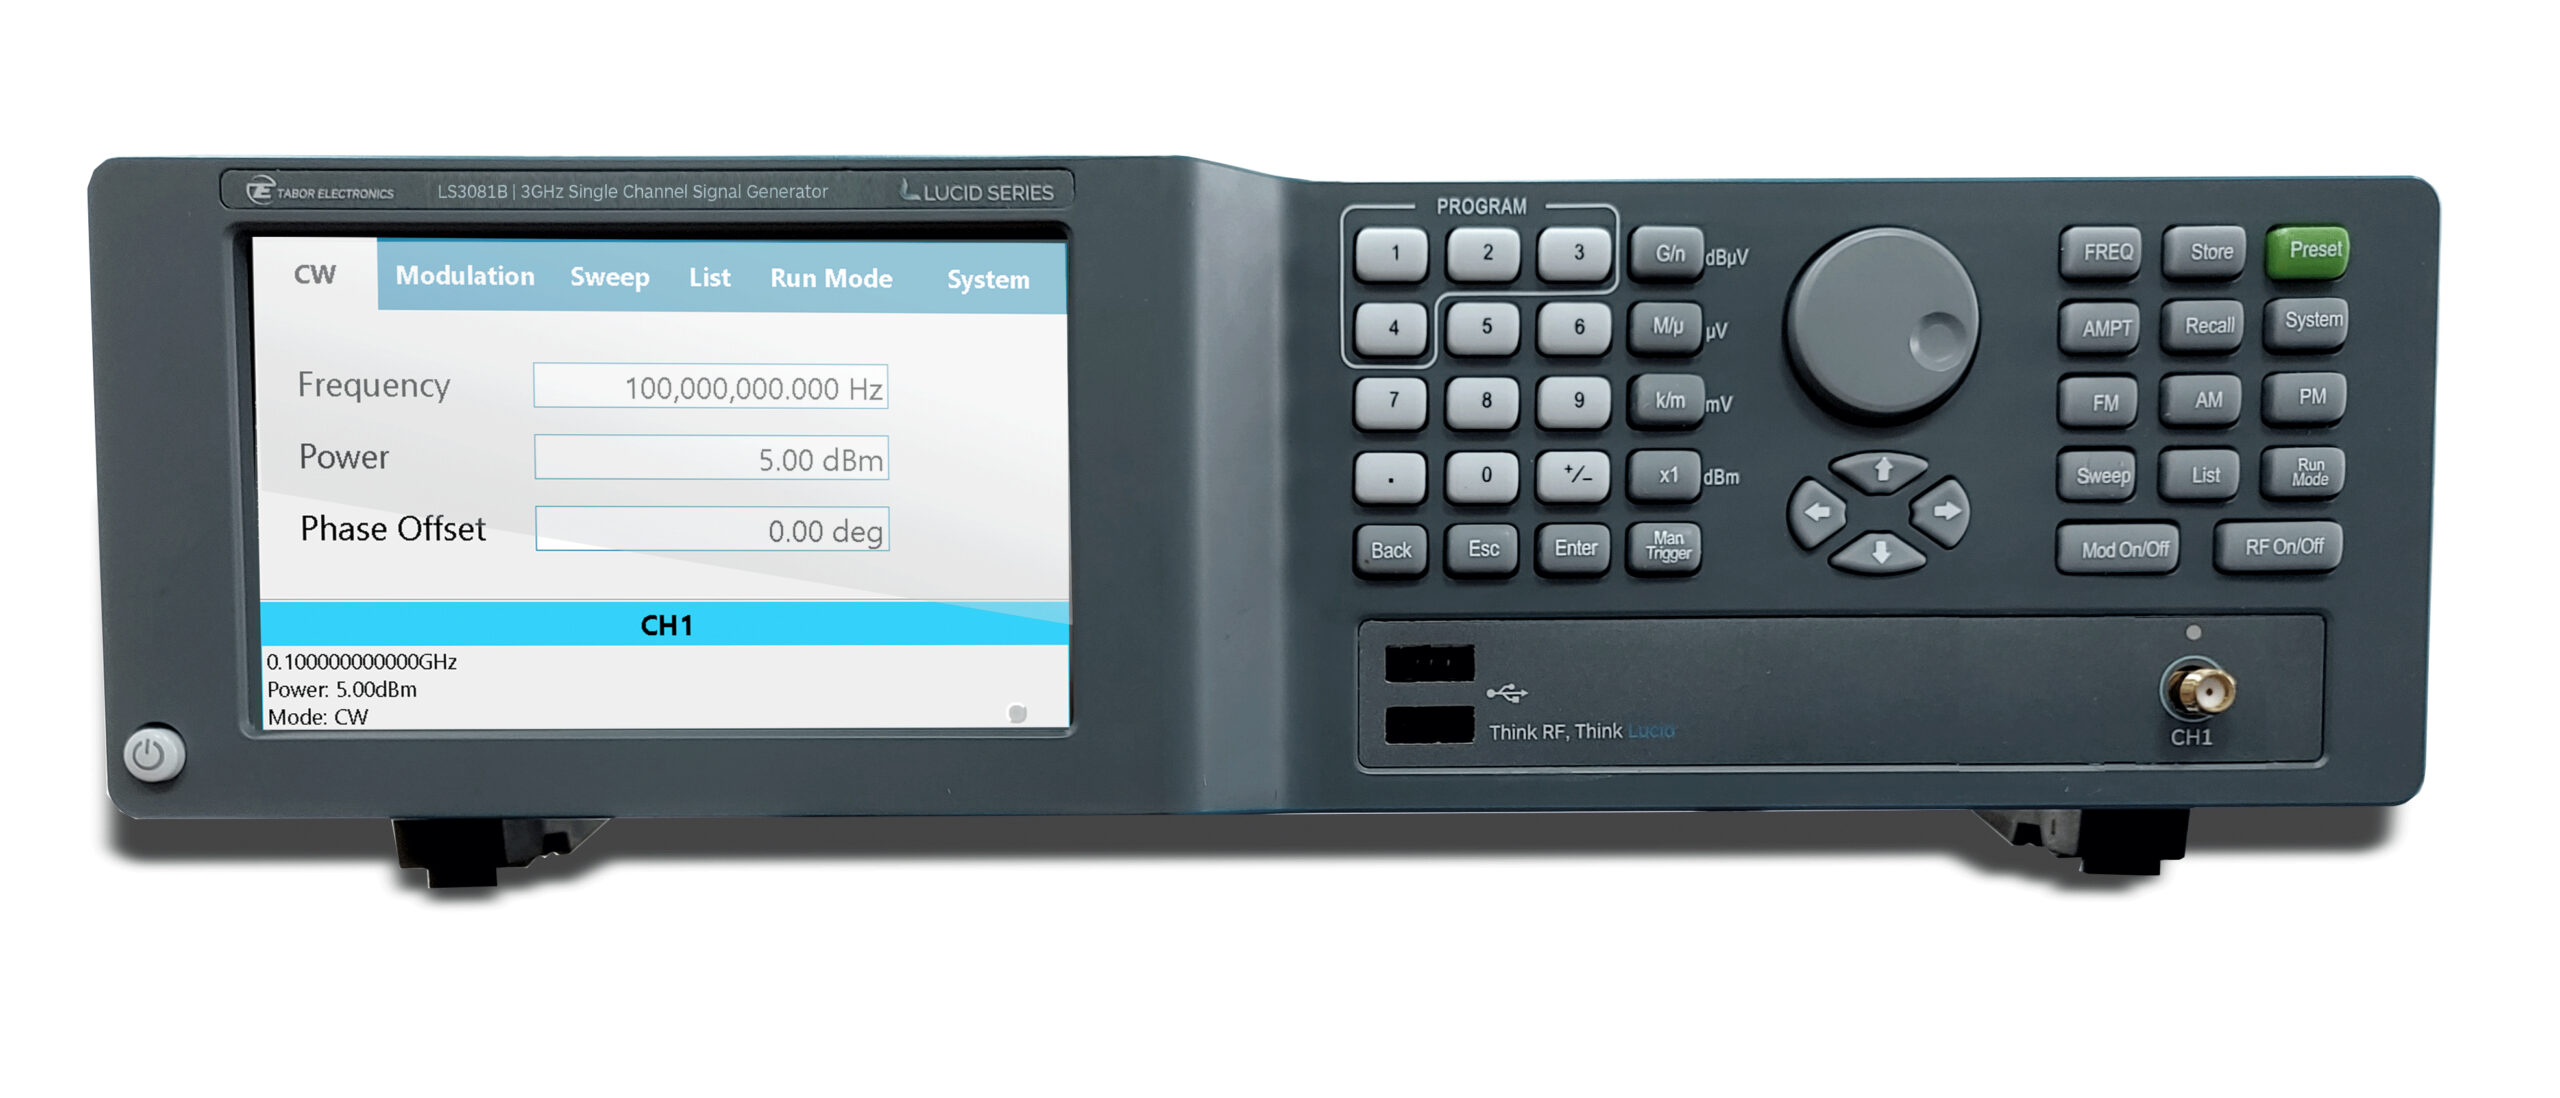 Feature-Rich Tabor LSxxx1B 3/6/12GHz Advanced Touch-Control Benchtop RF Generators